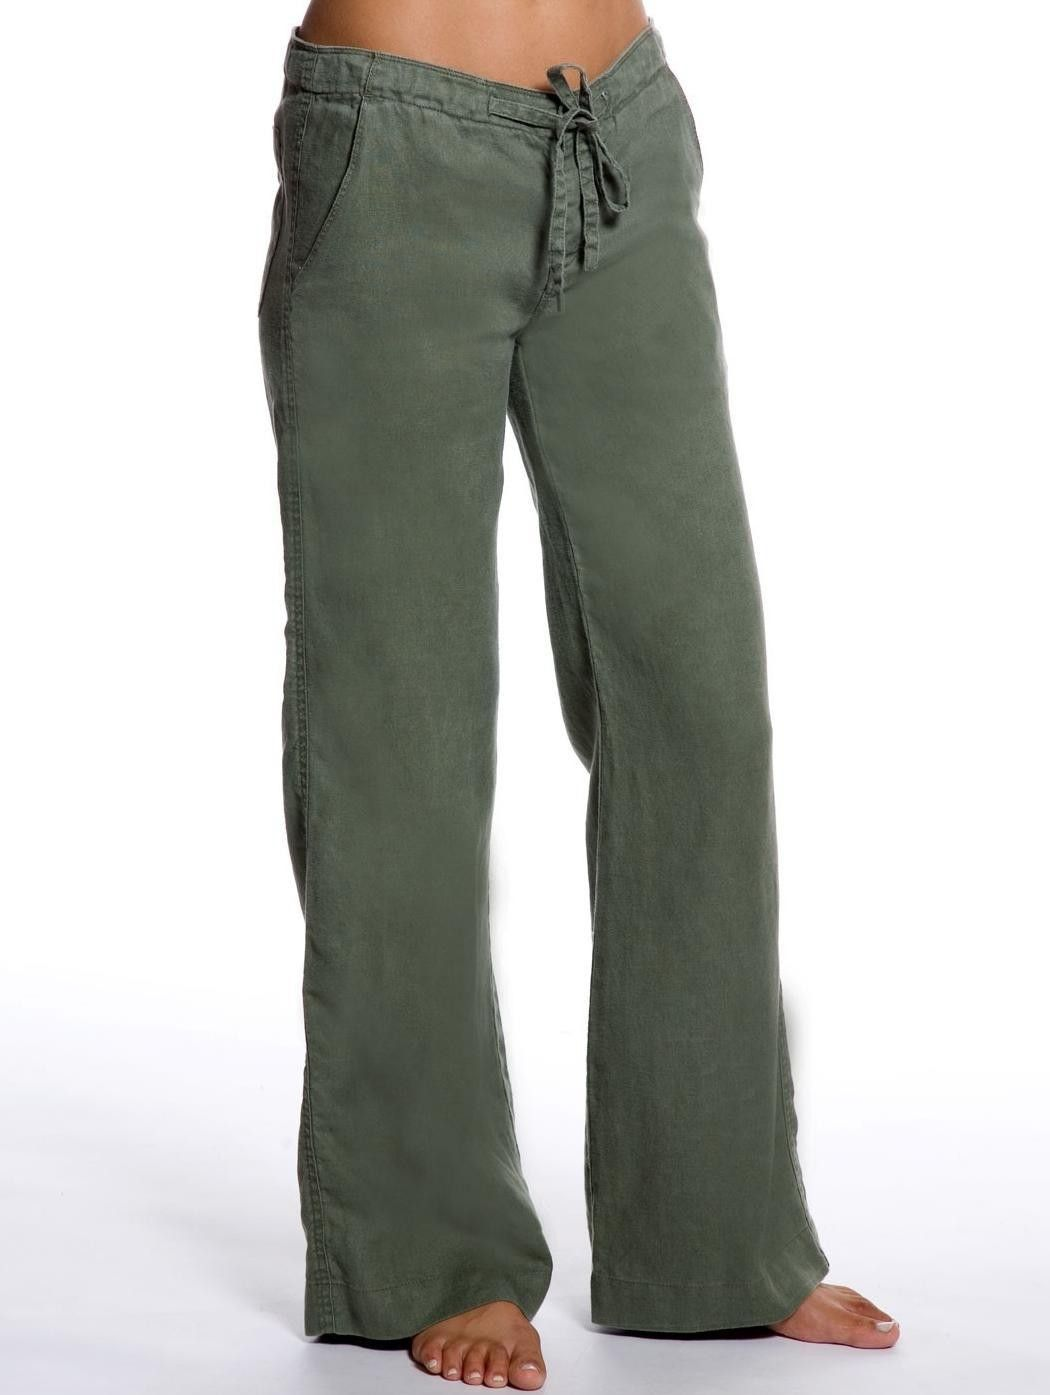 Olive Relaxed Linen Pants - Green Linen Pants for Women|Island ...